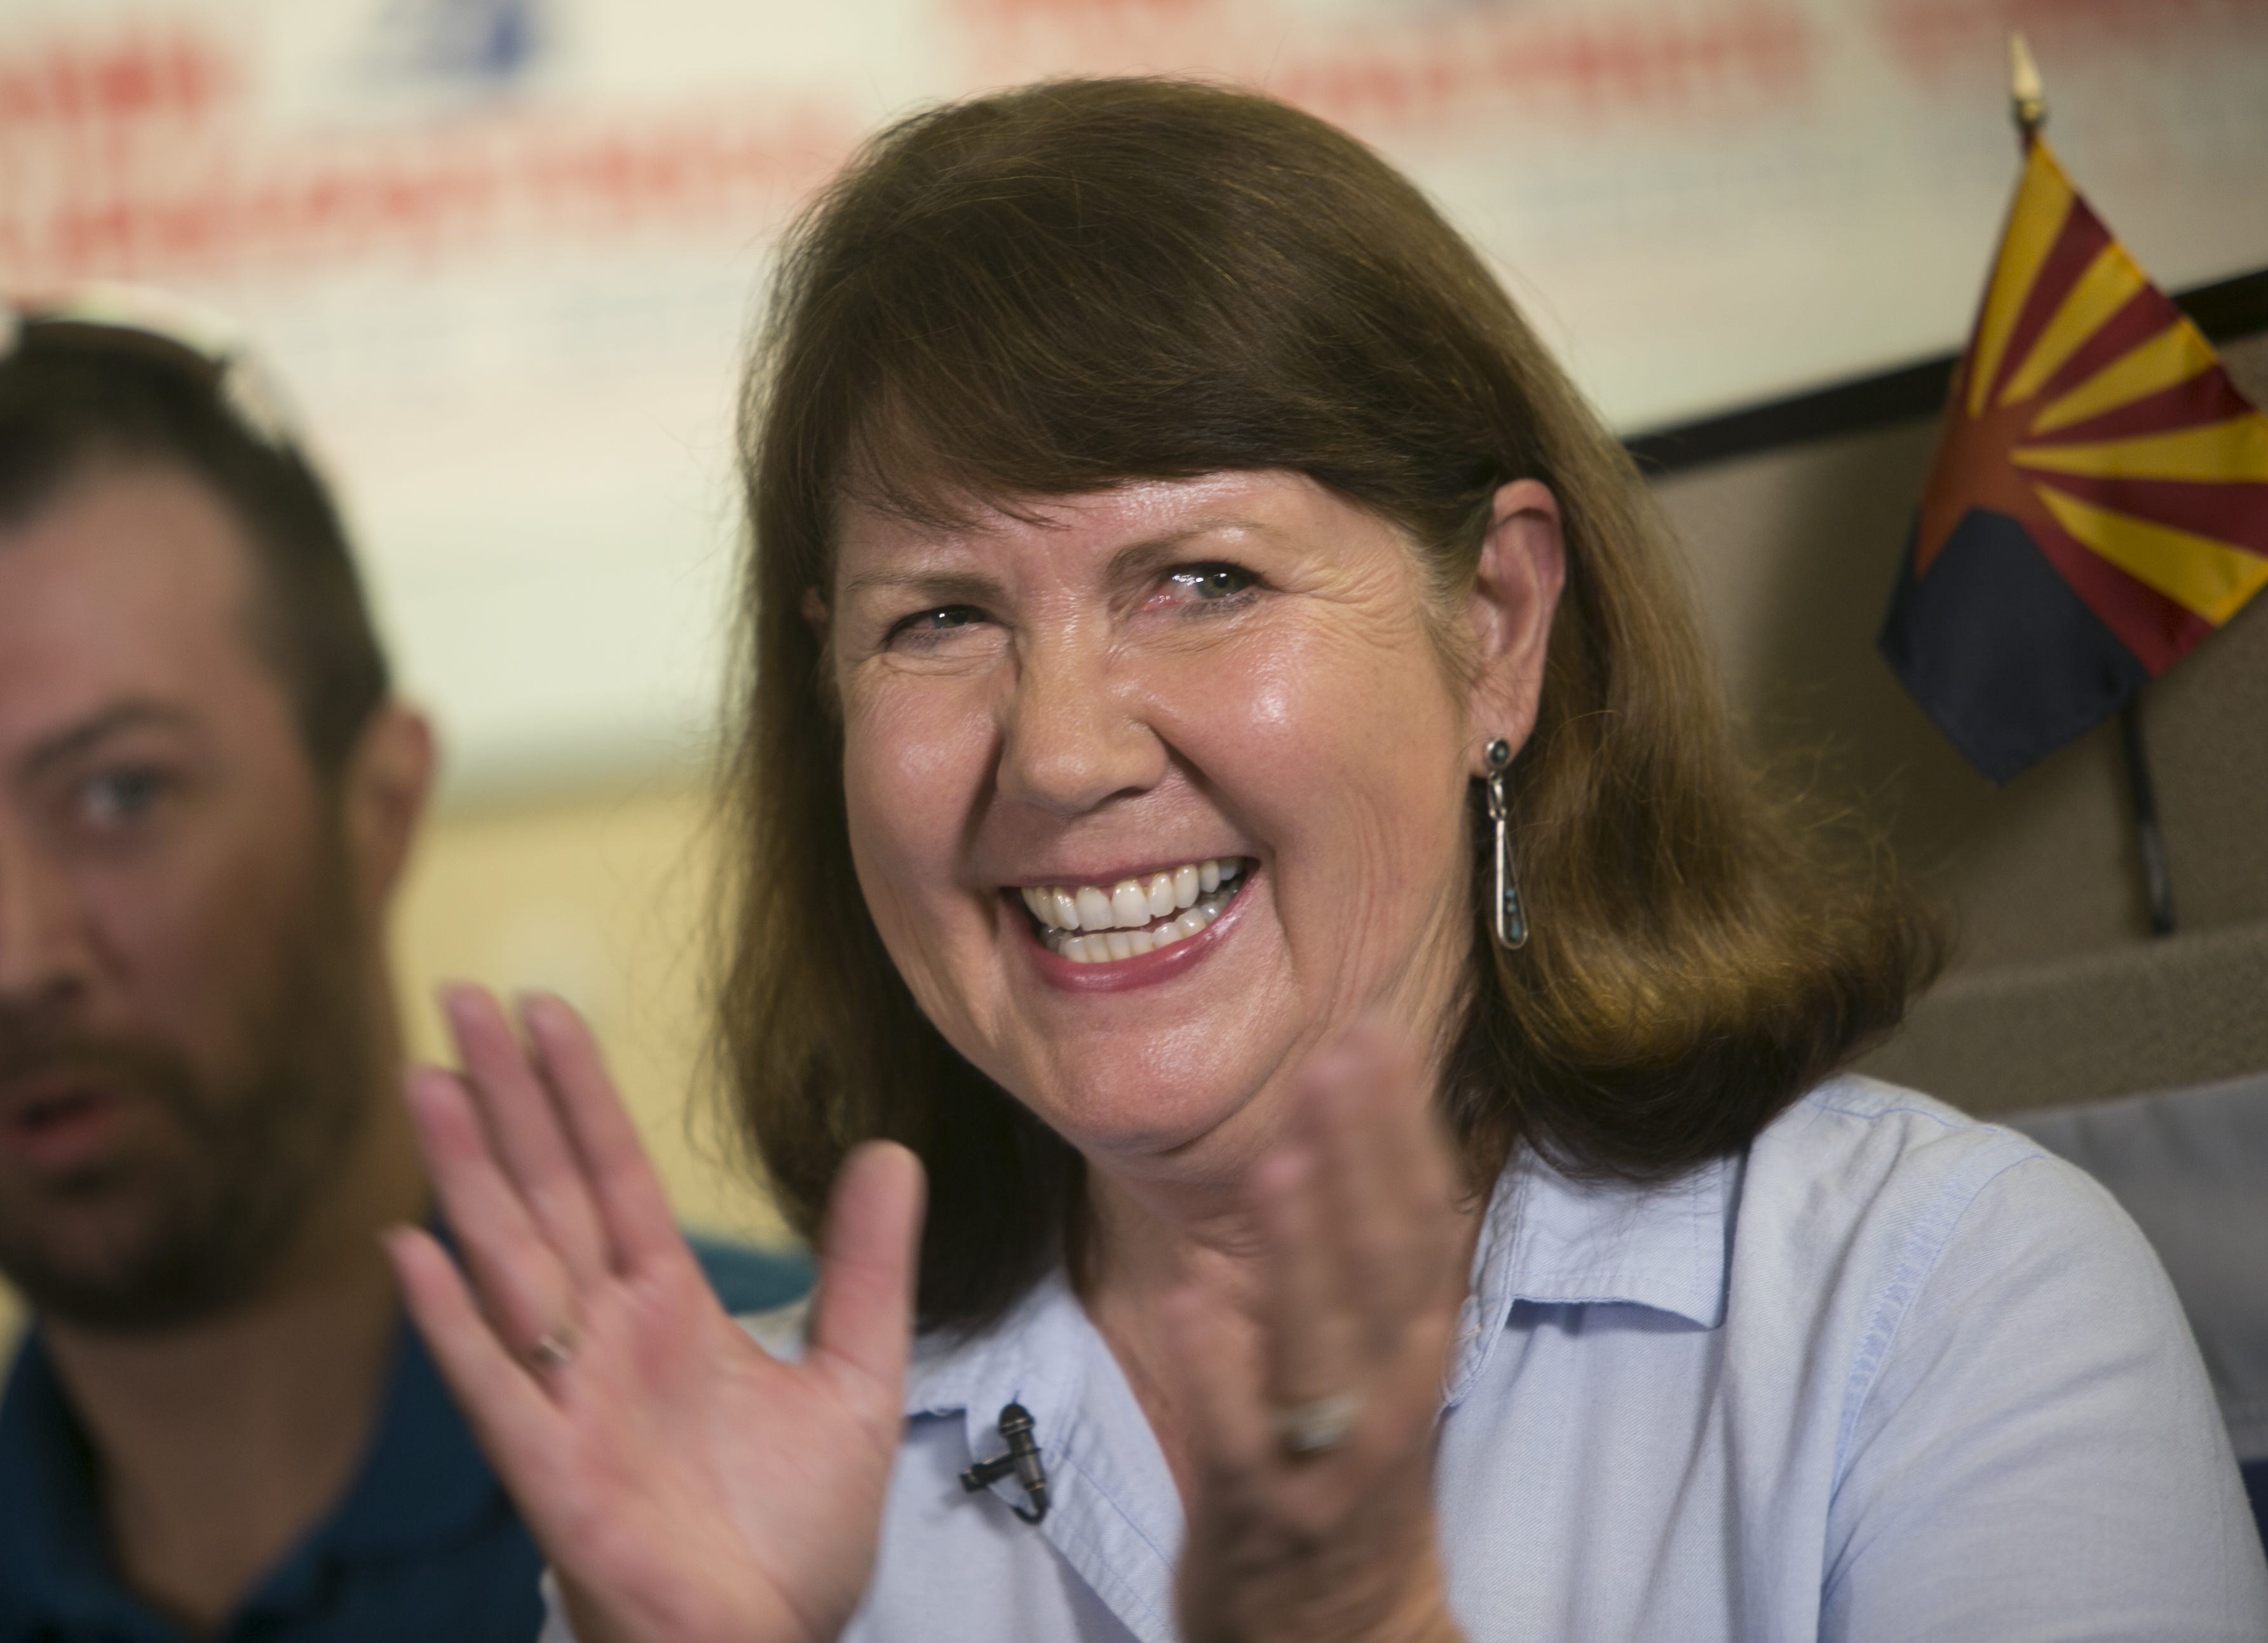 Arizona congresswoman Ann Kirkpatrick to get treatment for alcohol dependence